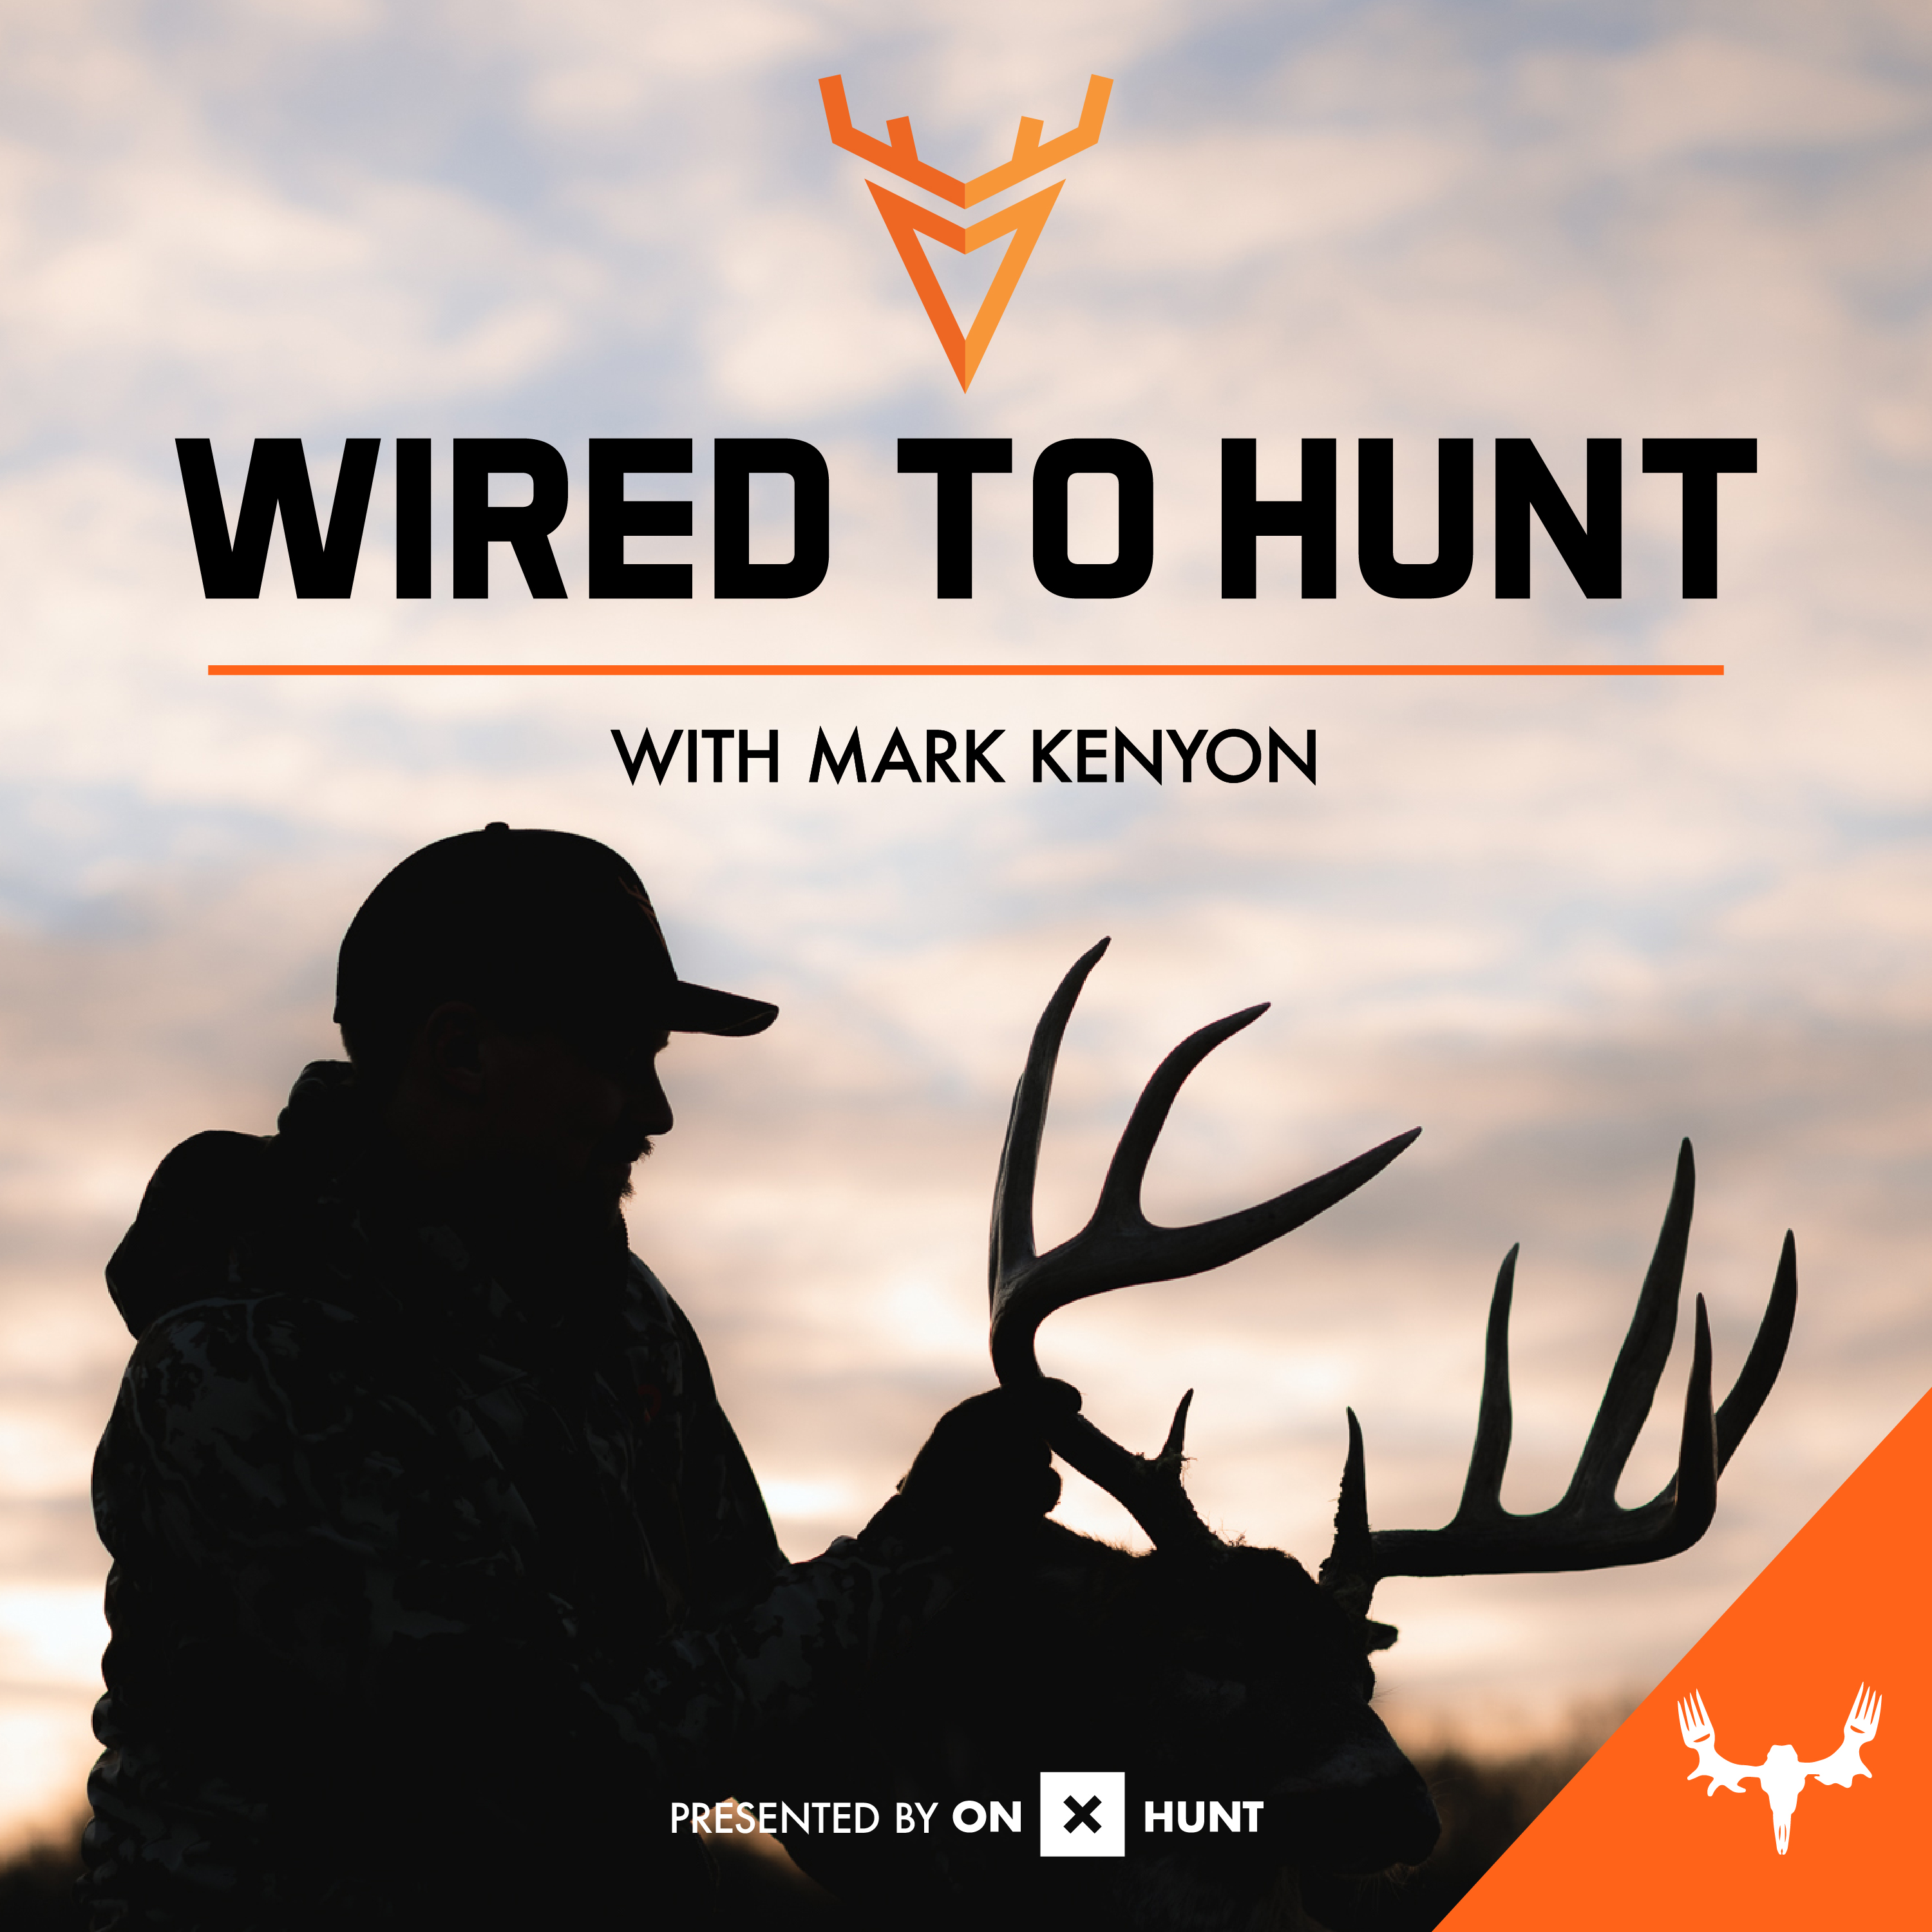 Ep. 281: Mental Toughness and Hunting with Olympic Gold Medalist David Wise